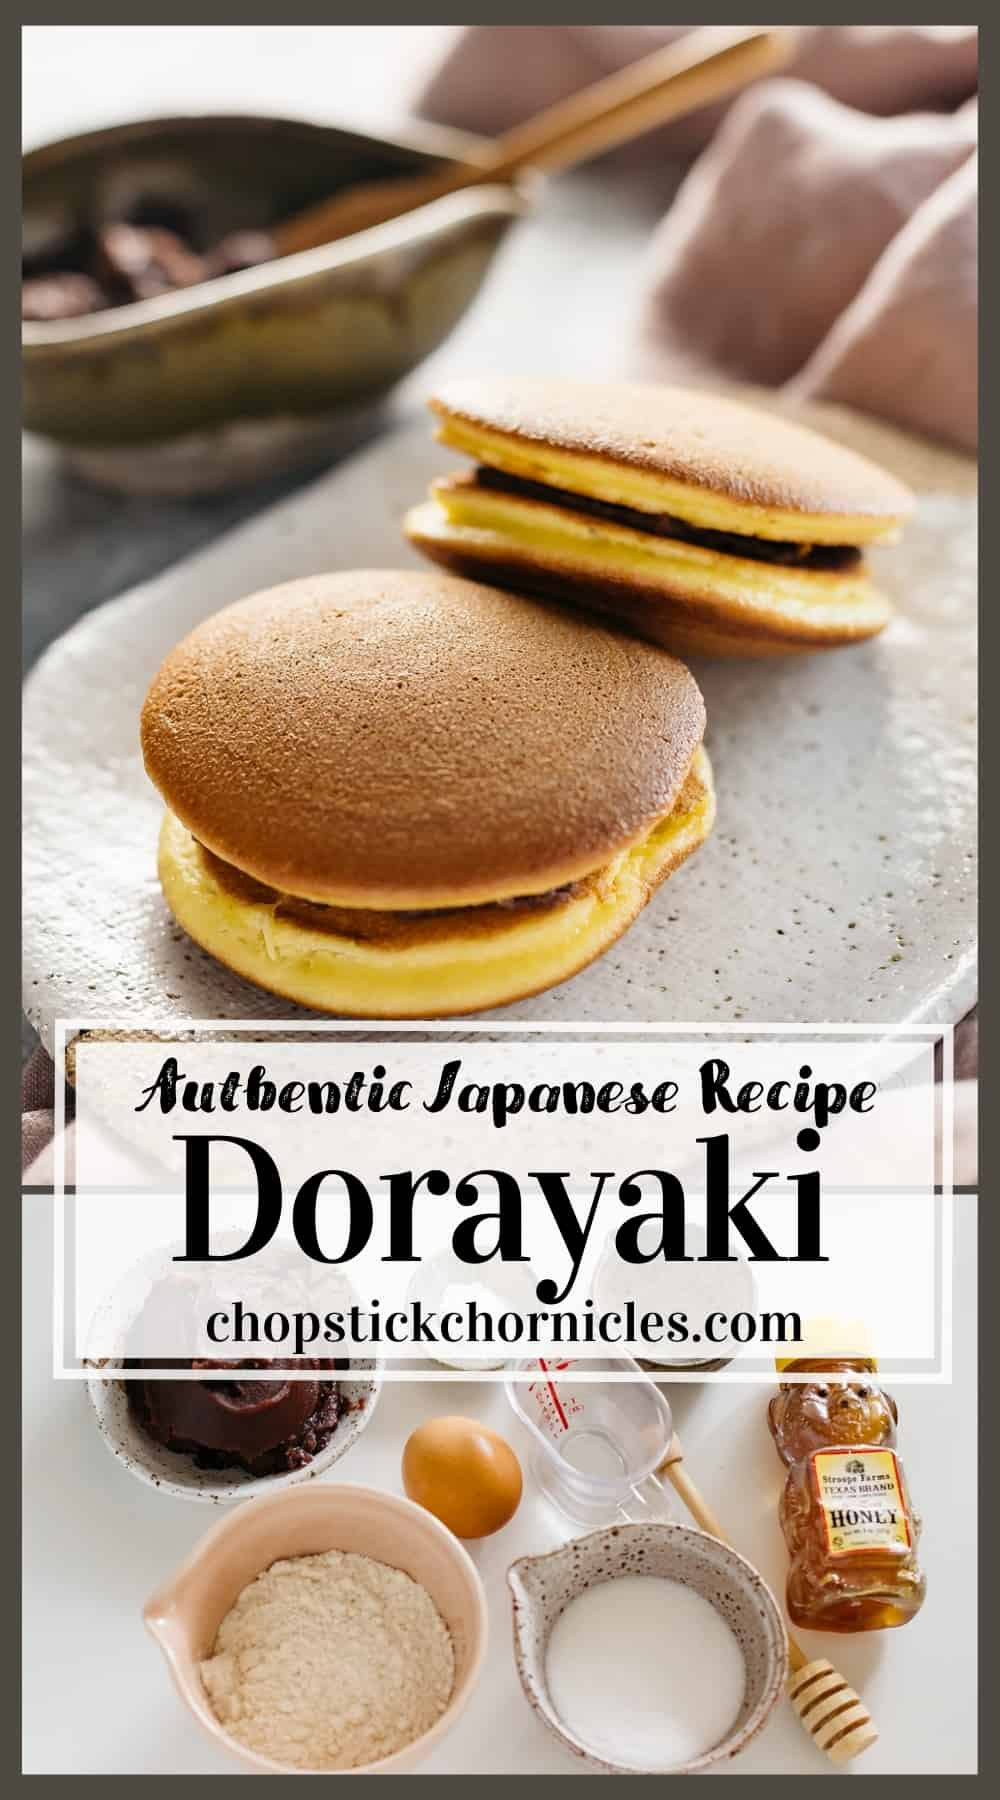 Dorayaki image collage for pinterest sharing with text overlay